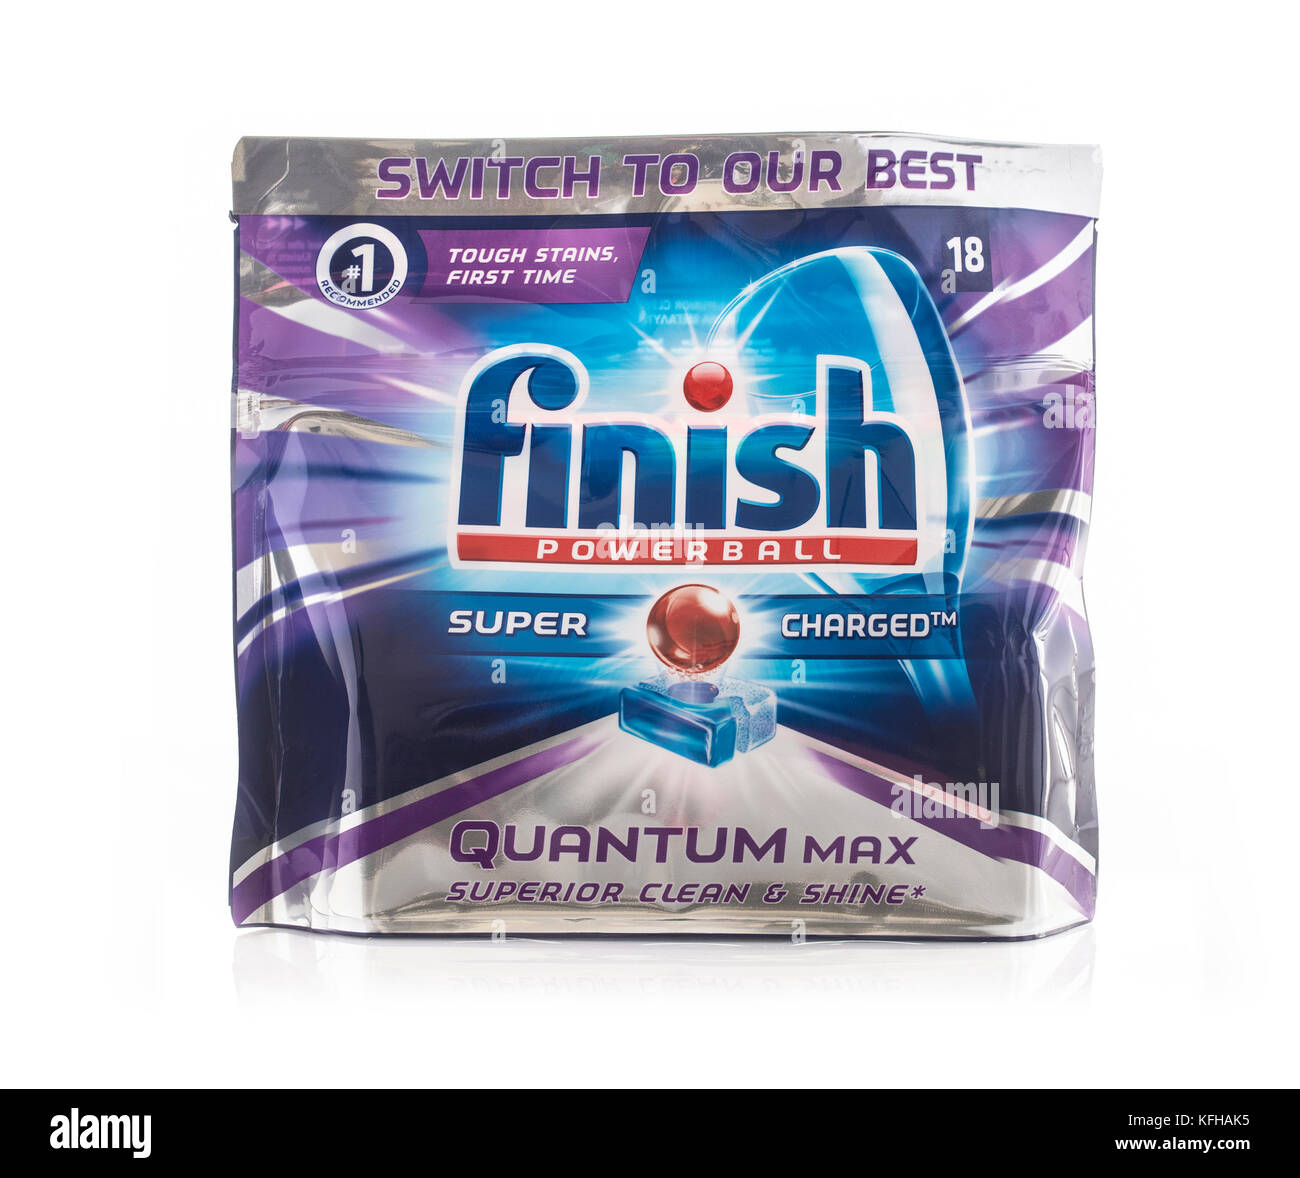 SWINDON, UK - OCTOBER 29, 2017: Finish Powerball Quantum Max Dishwasher Tablets on a white background - Stock Image